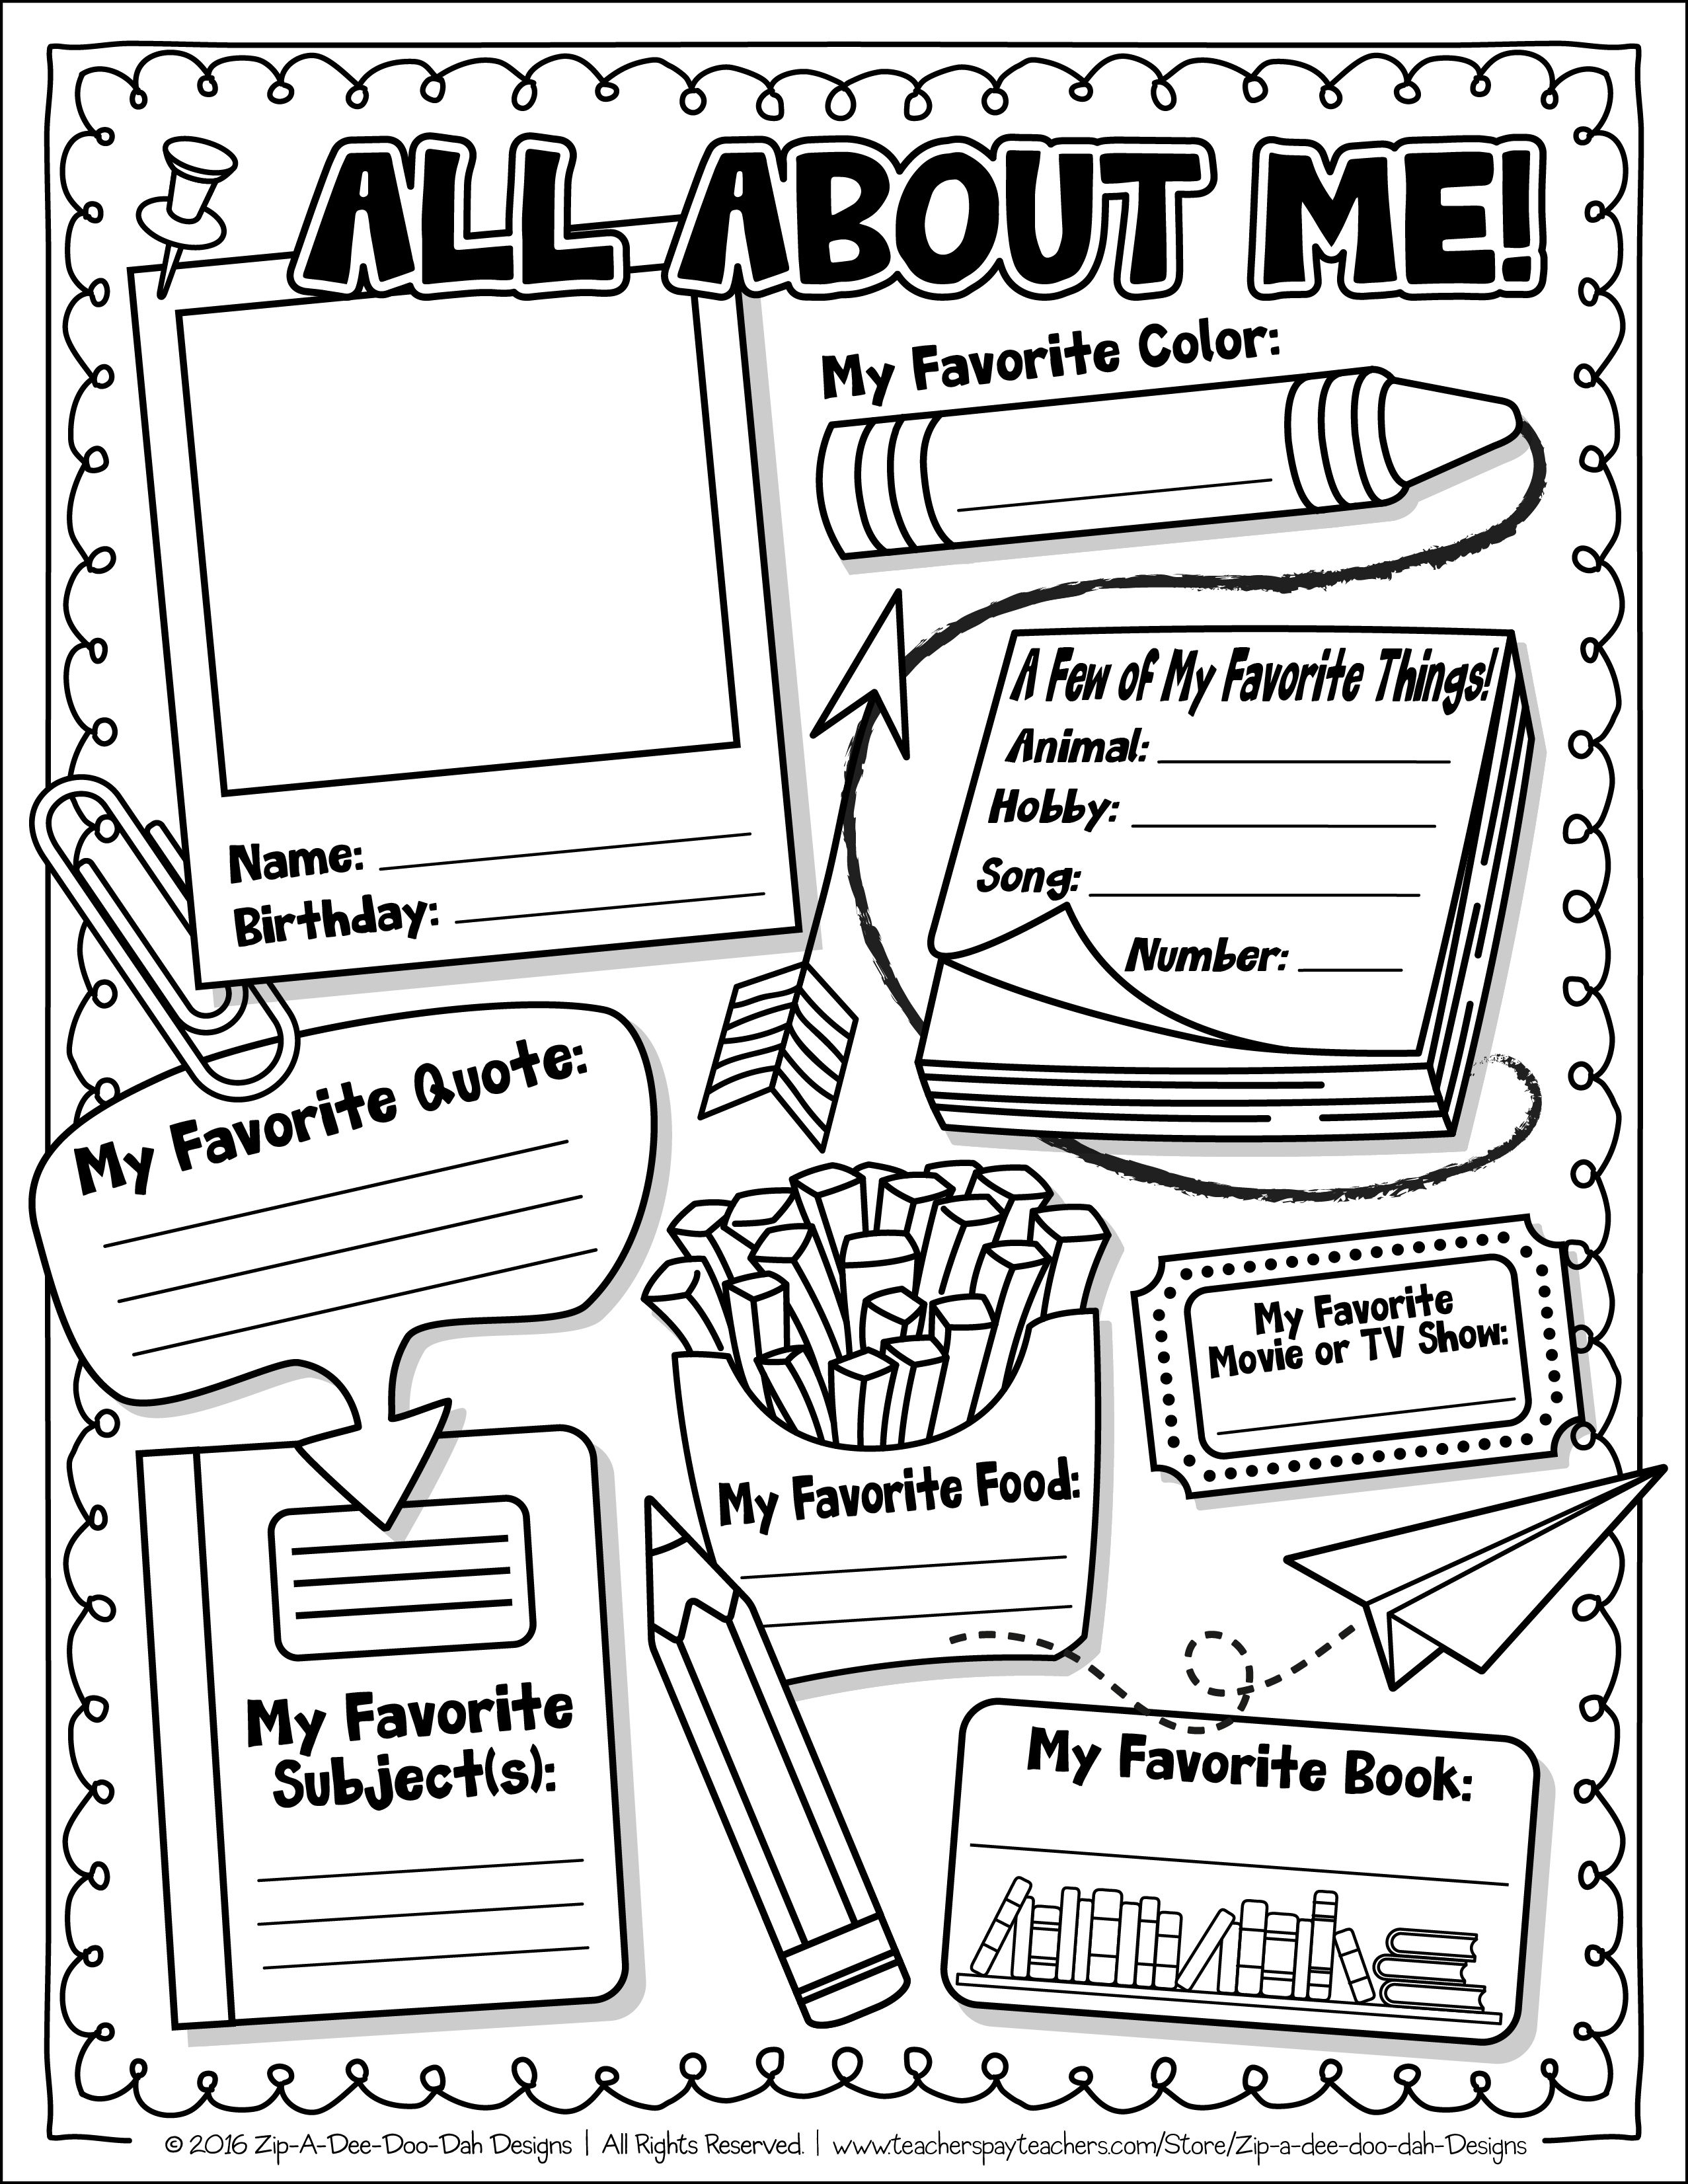 FREE All About Me Activity Worksheet Template {Zip-A-Dee ...